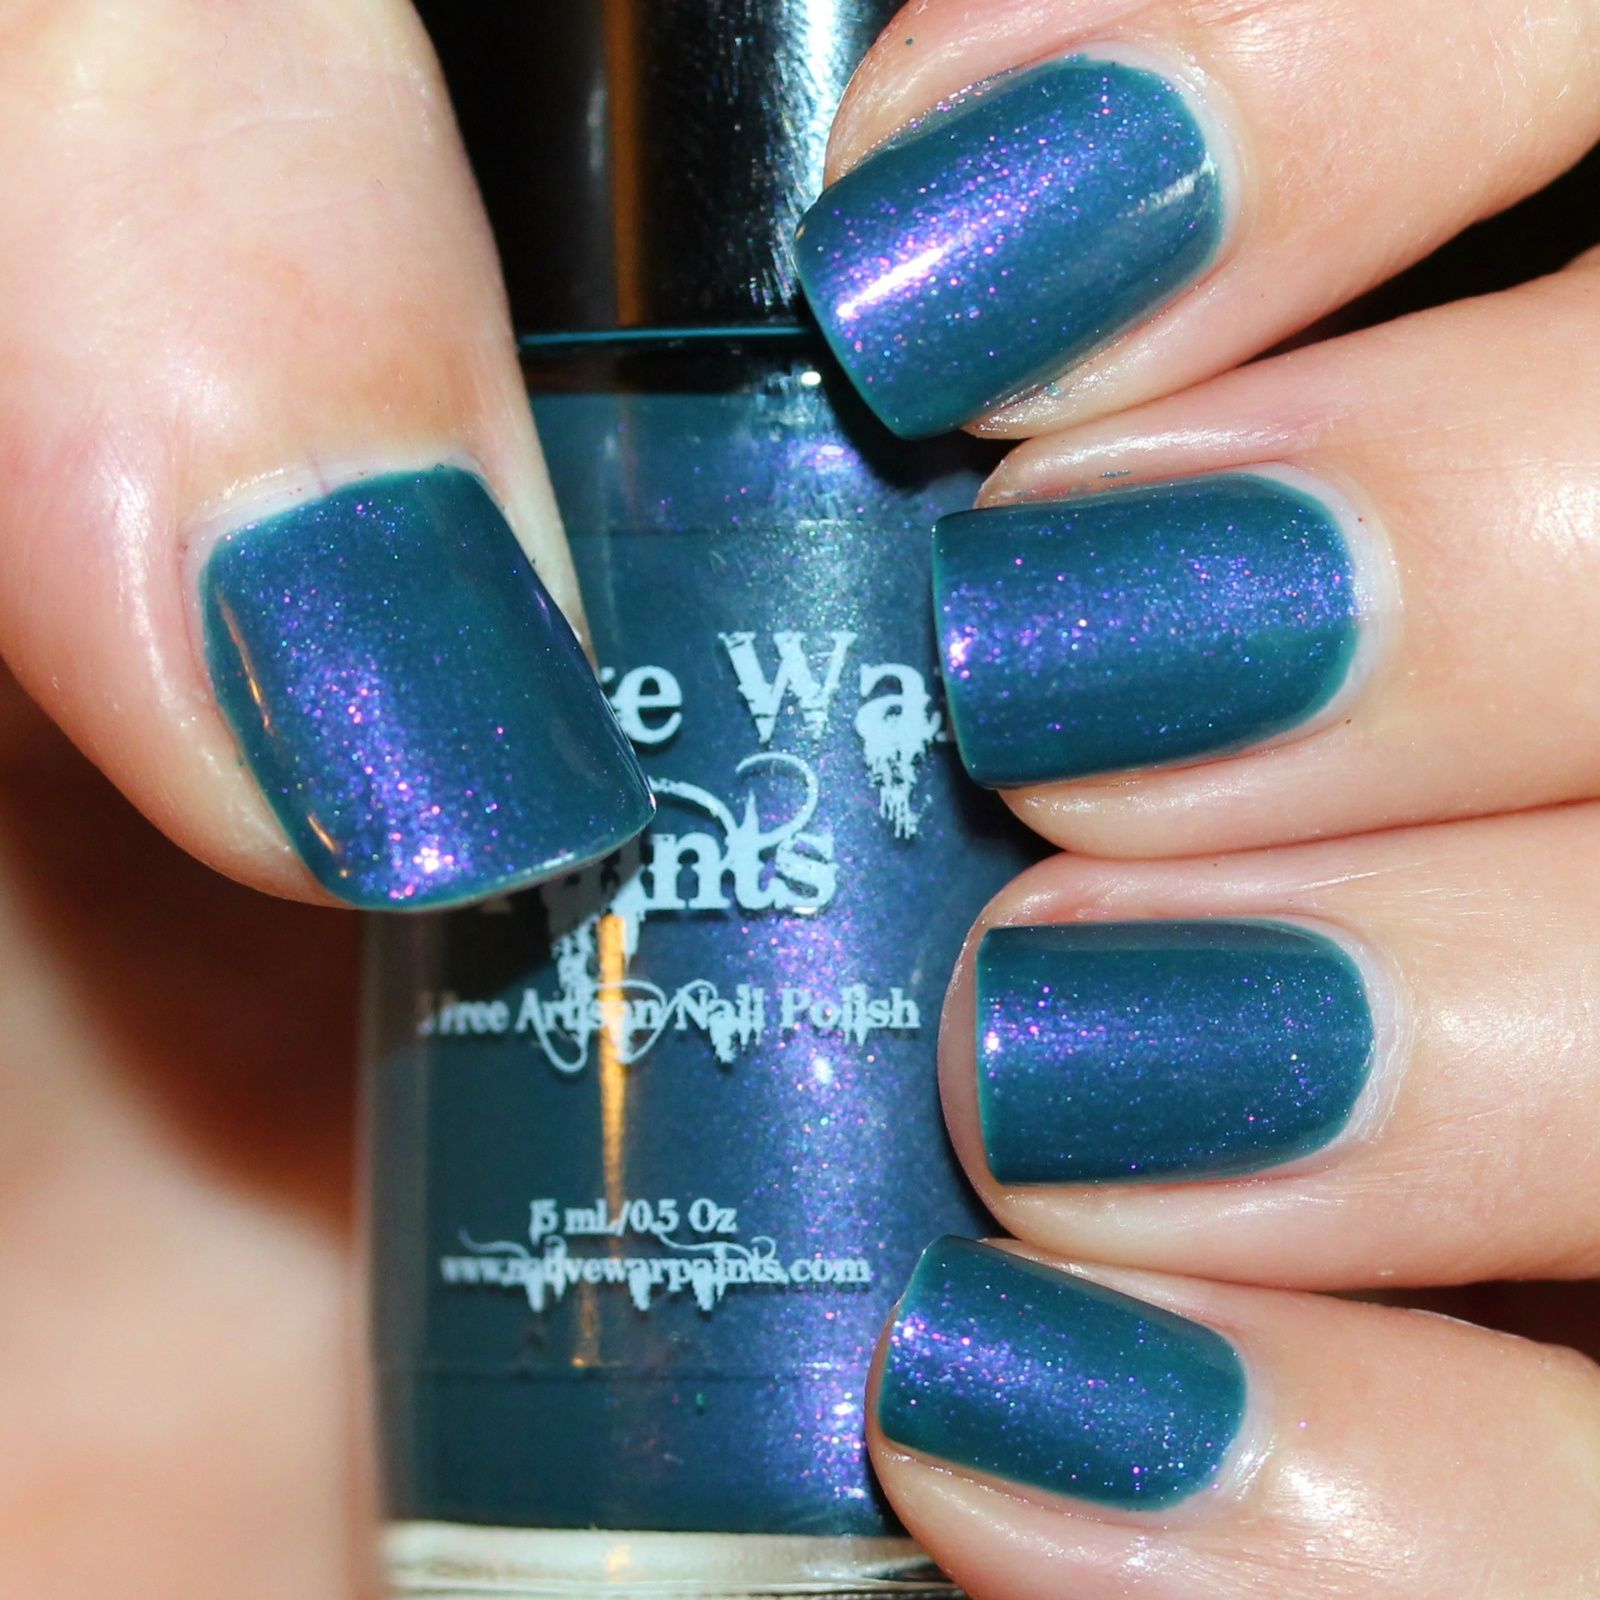 Native War Paints Teal Me You Love Me (2 coats, no top coat)